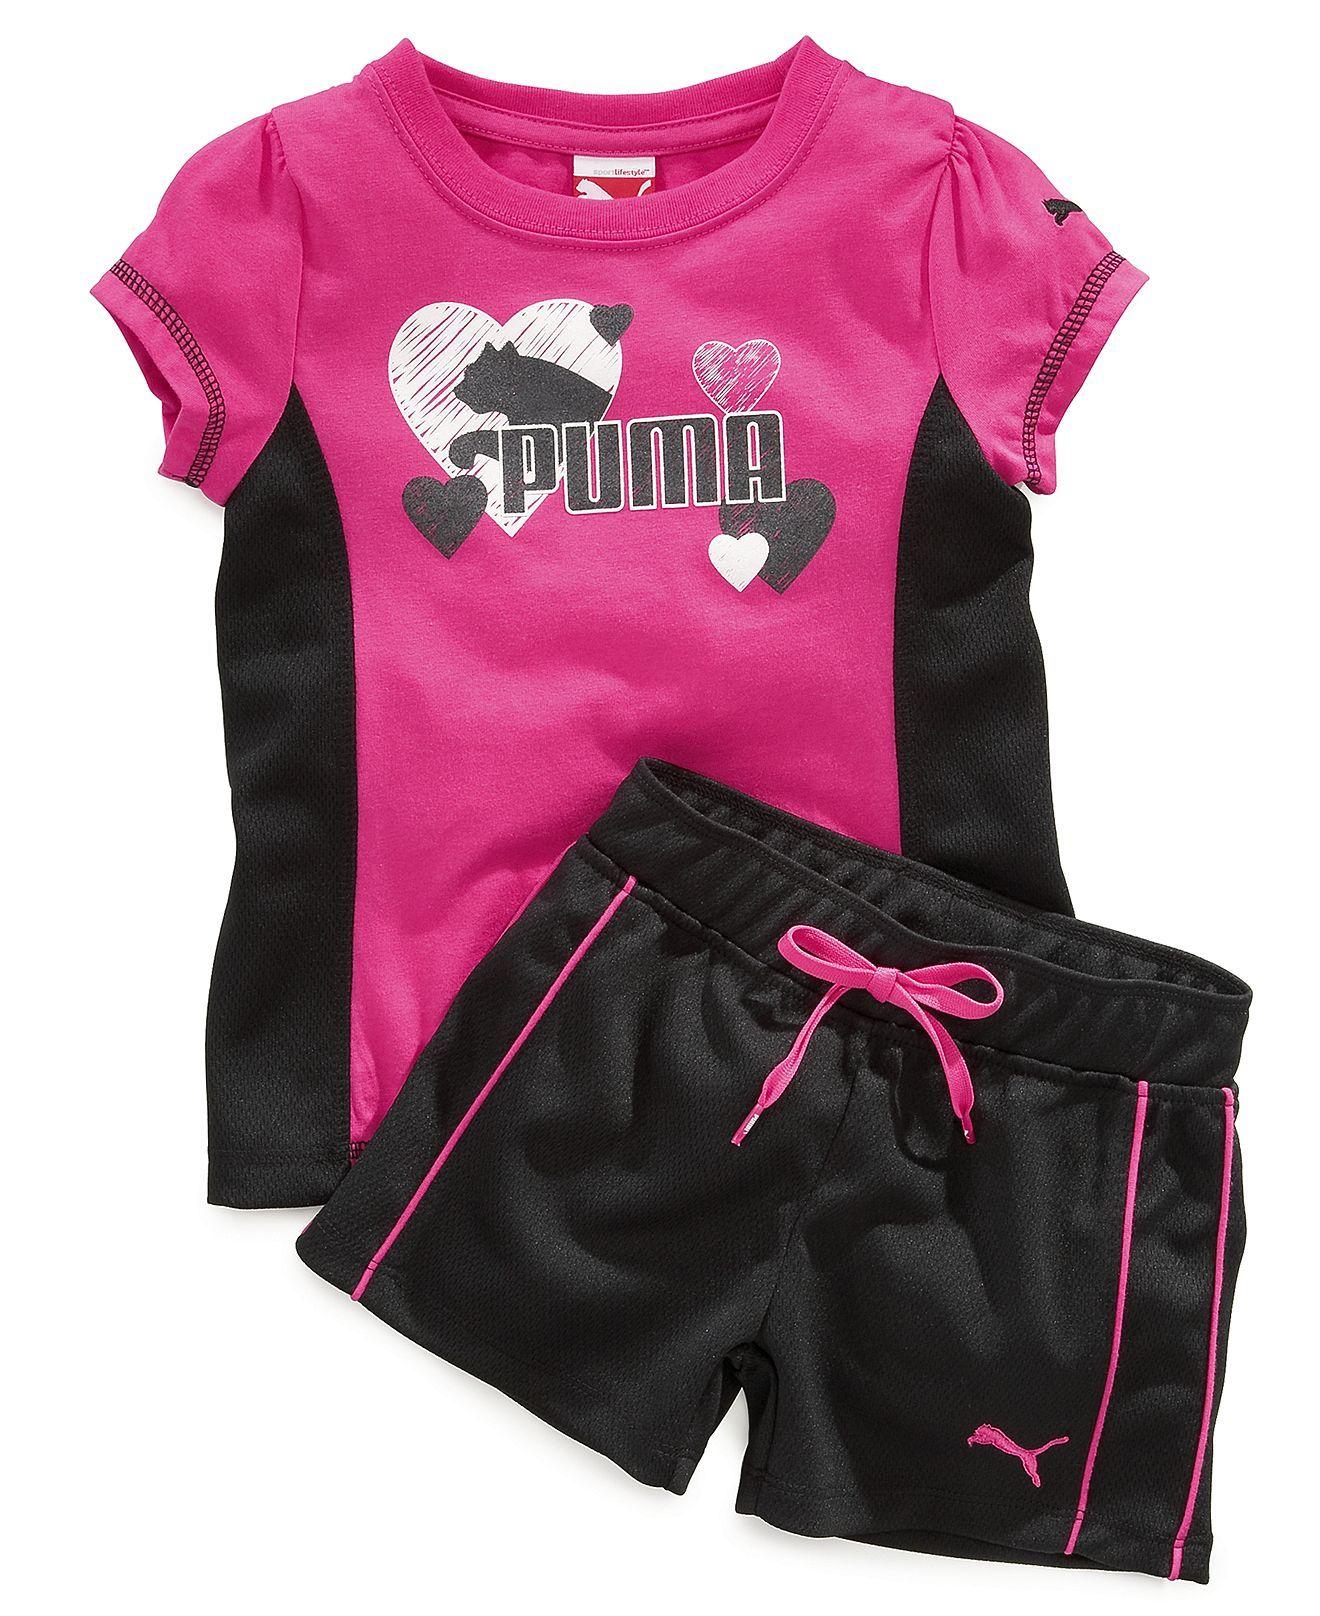 9ce01cd42 Puma Baby Set, Baby Girls Two-Piece Shirt and Shorts - Kids Shop All Baby -  Macy's